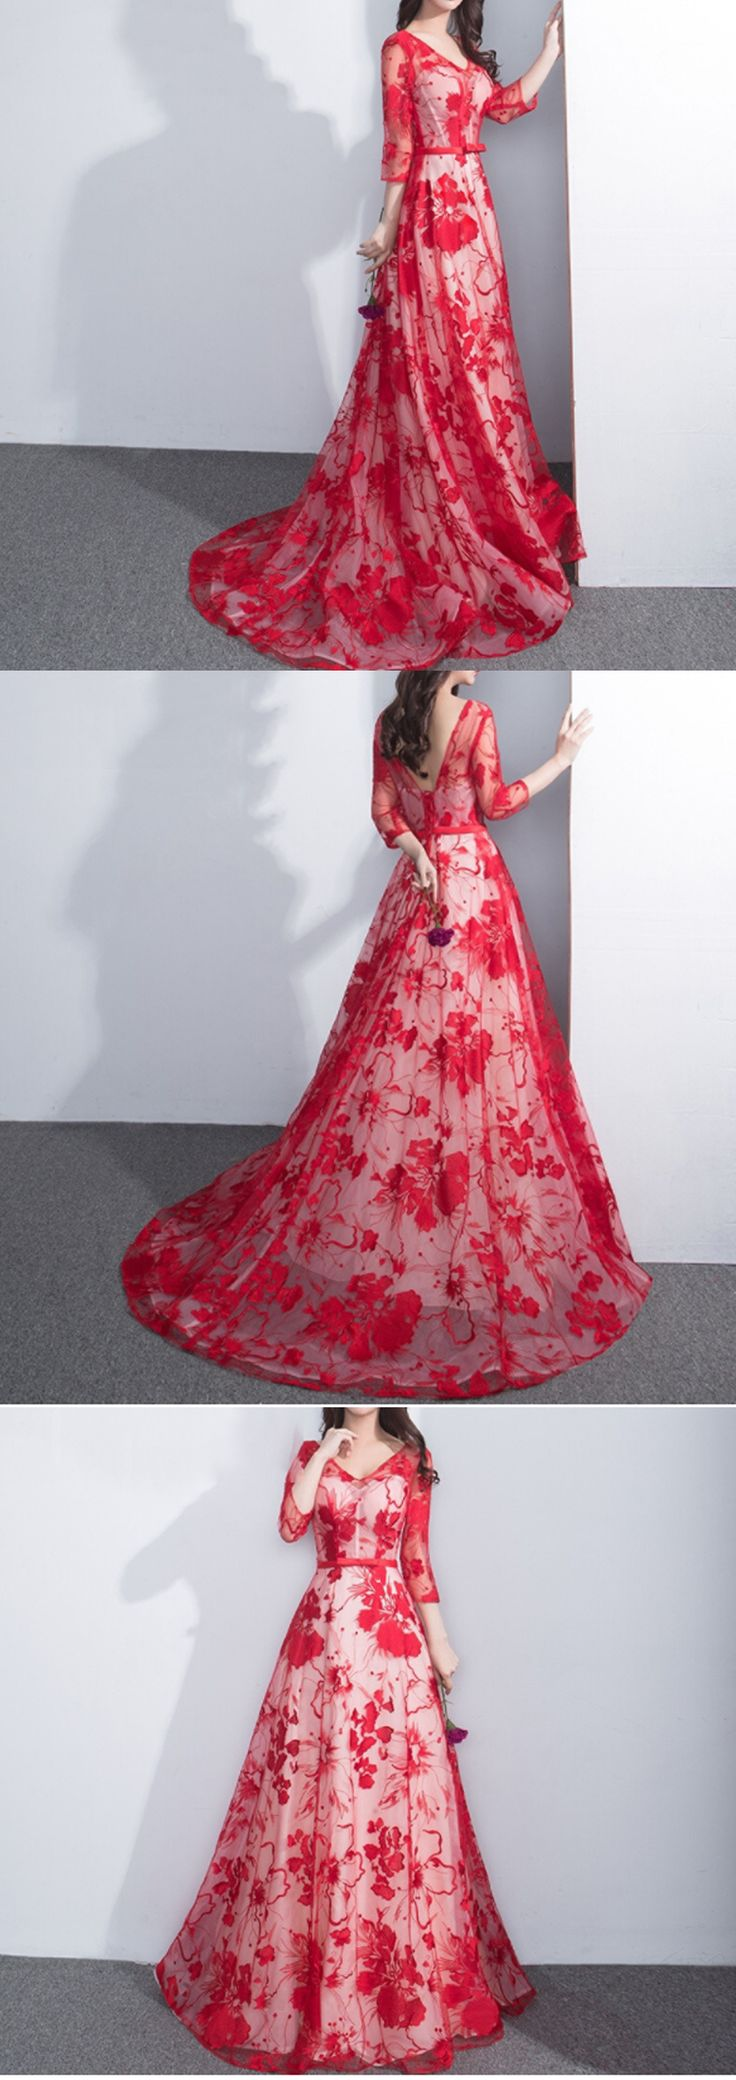 Charming See Through Red Floral Prints Lace Three-quarter Long Prom Dresses,PD00020#fashion #promdress